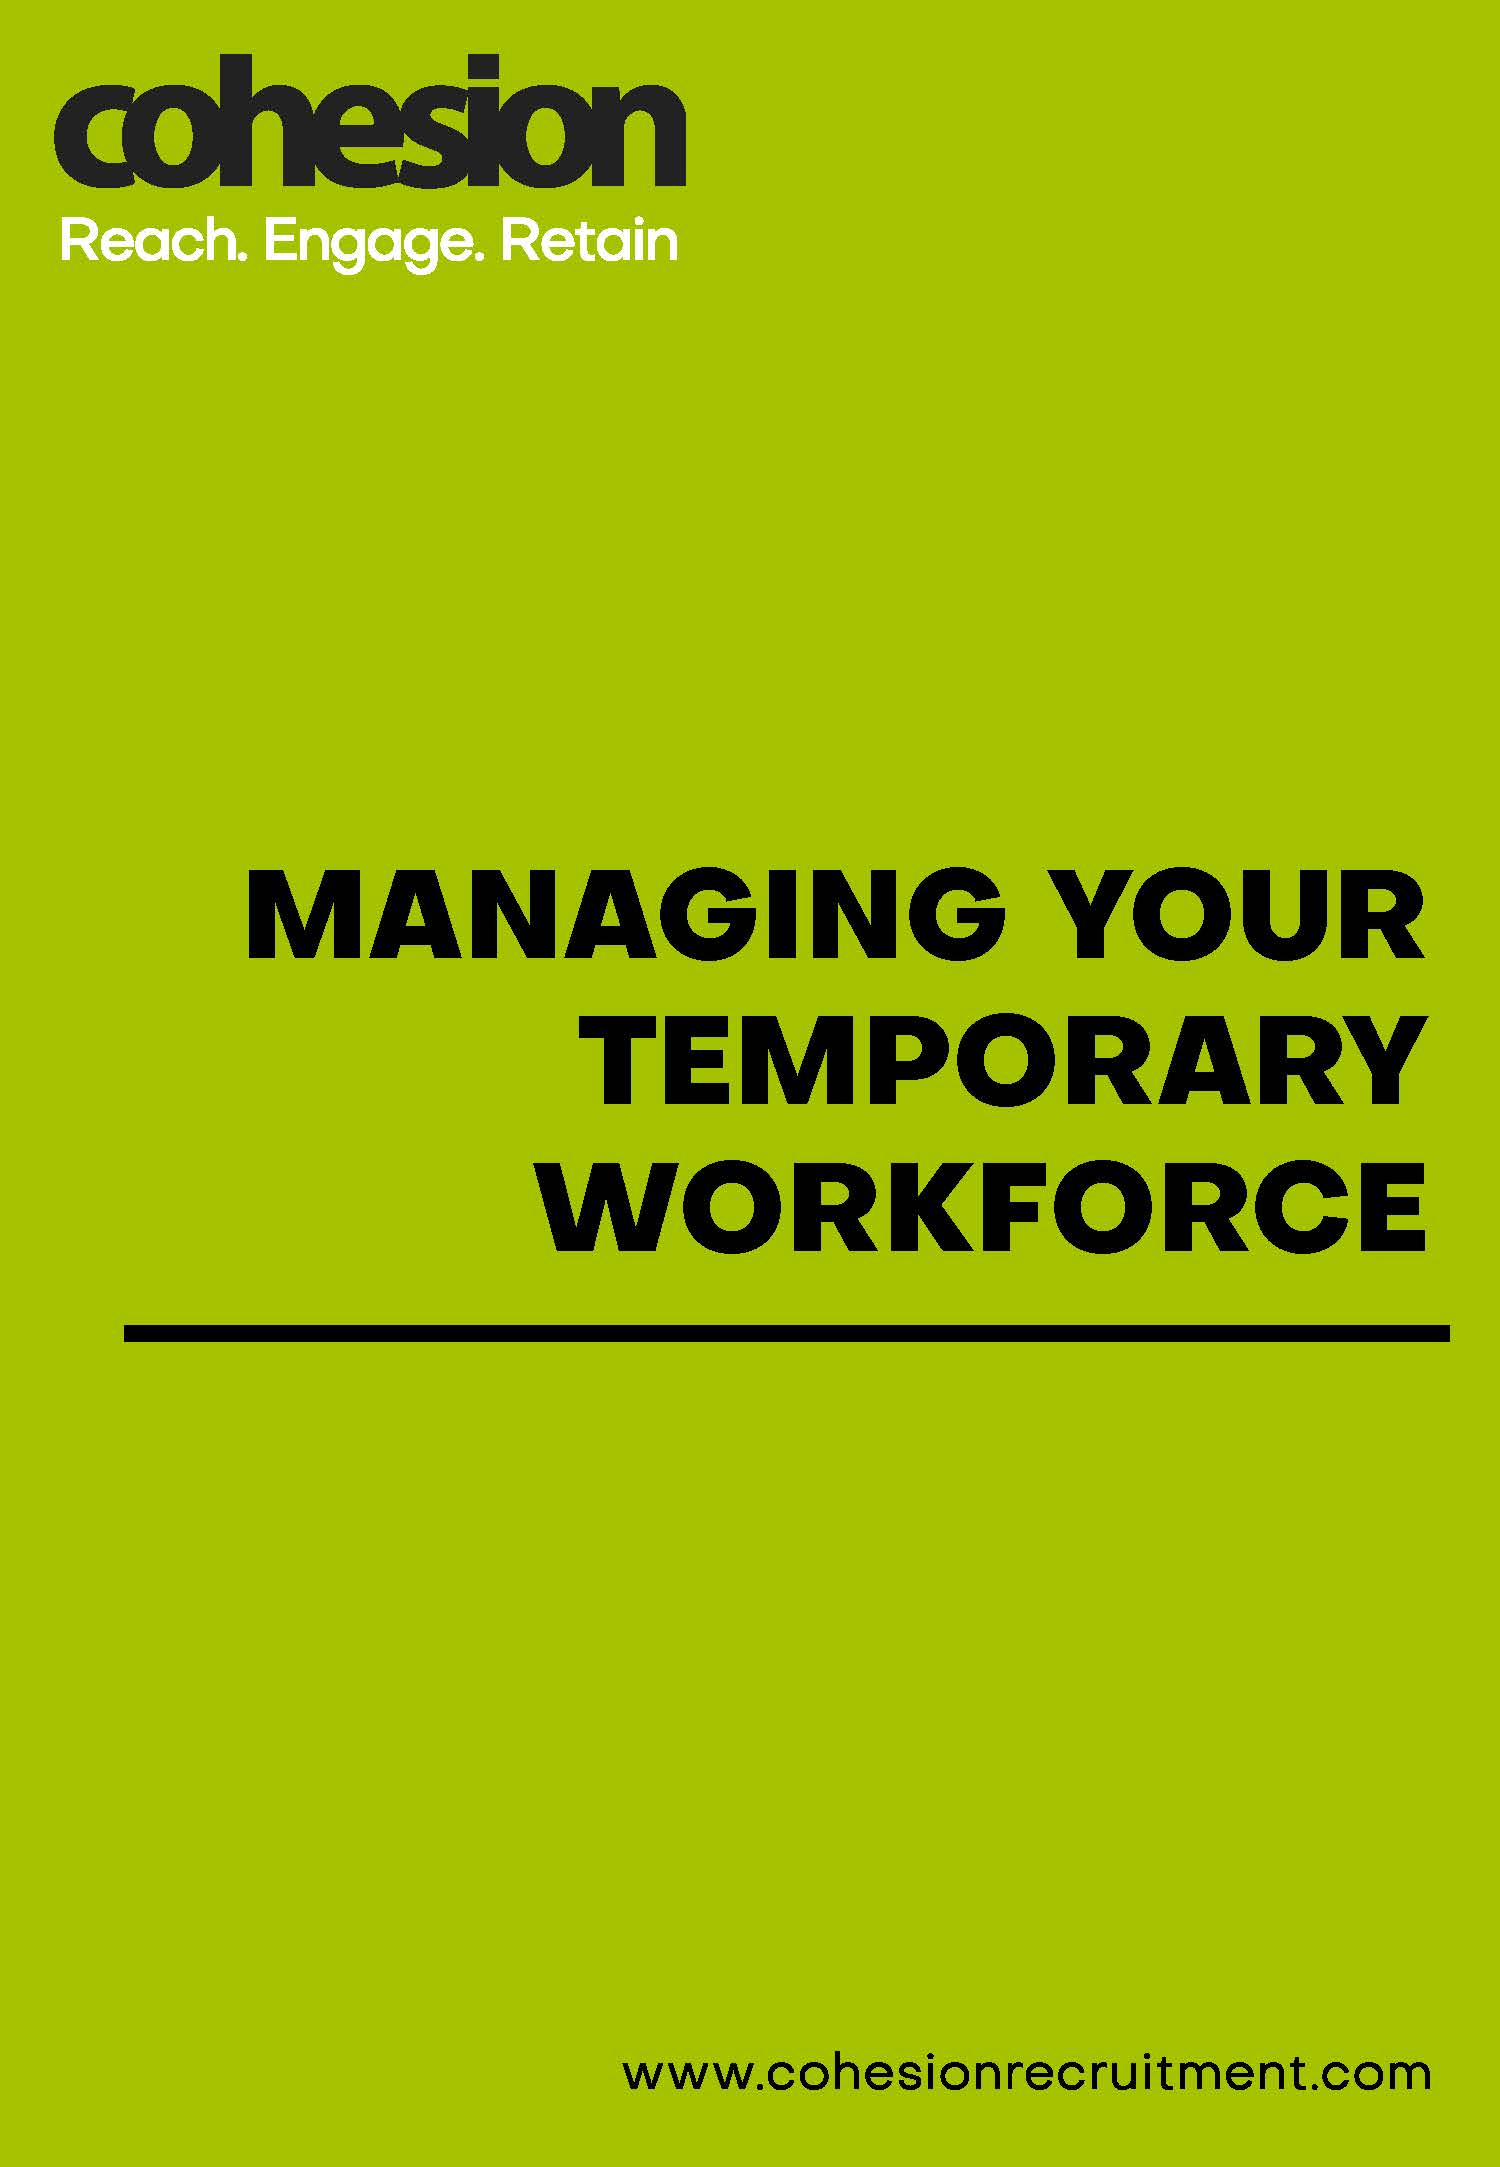 Managing your temporary workforce